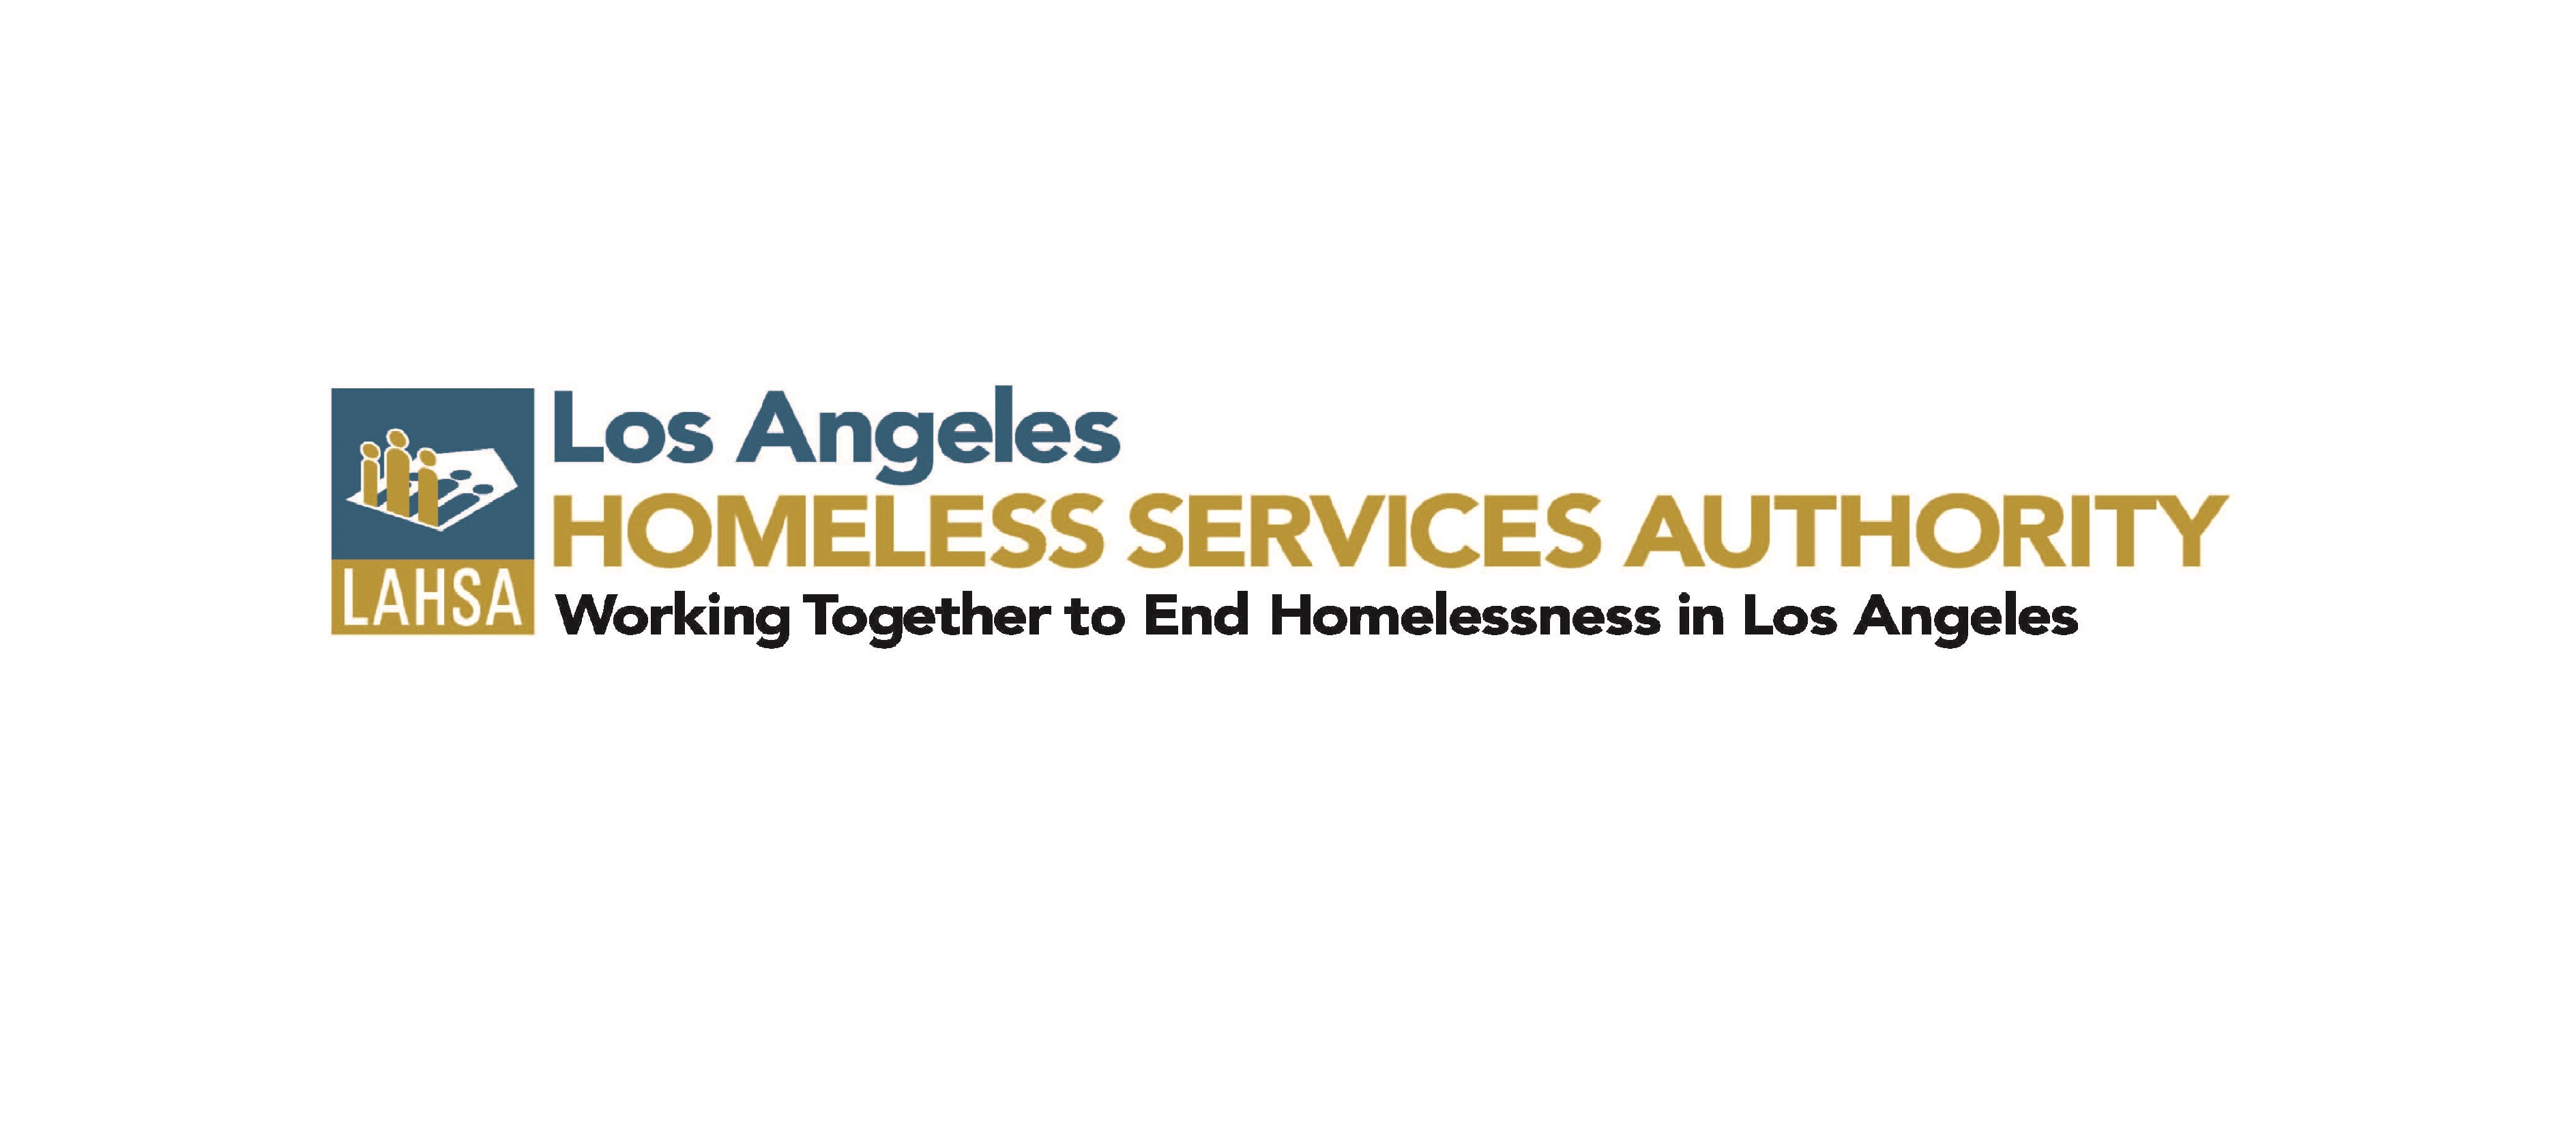 Los Angeles Homeless Services Authority in blue, green, and black text with logo to the left